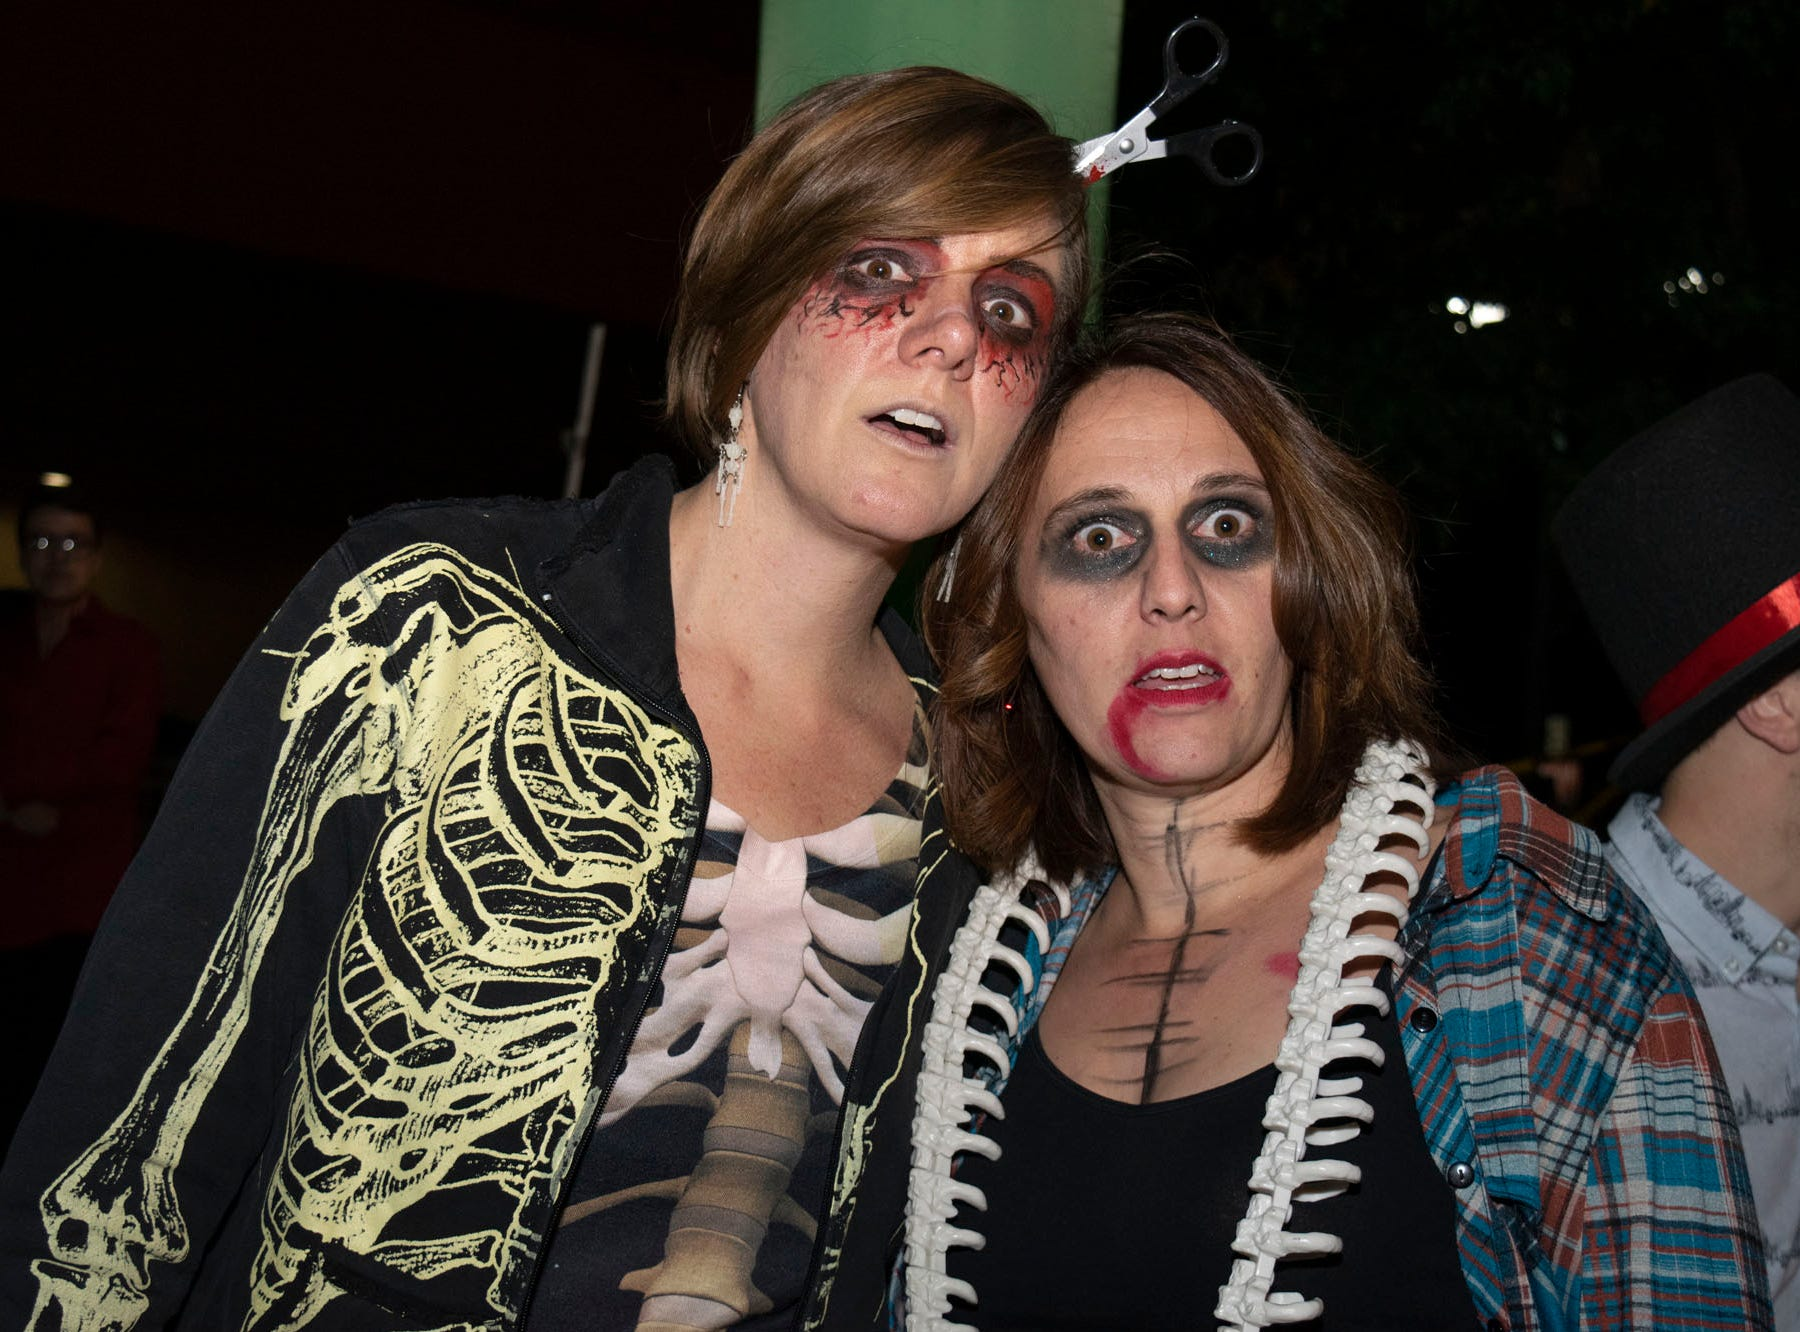 Autumn Spencer and Kesley Brown attend the Zombie Crawl on Saturday, Oct. 20, 2018. Reno, Nev.